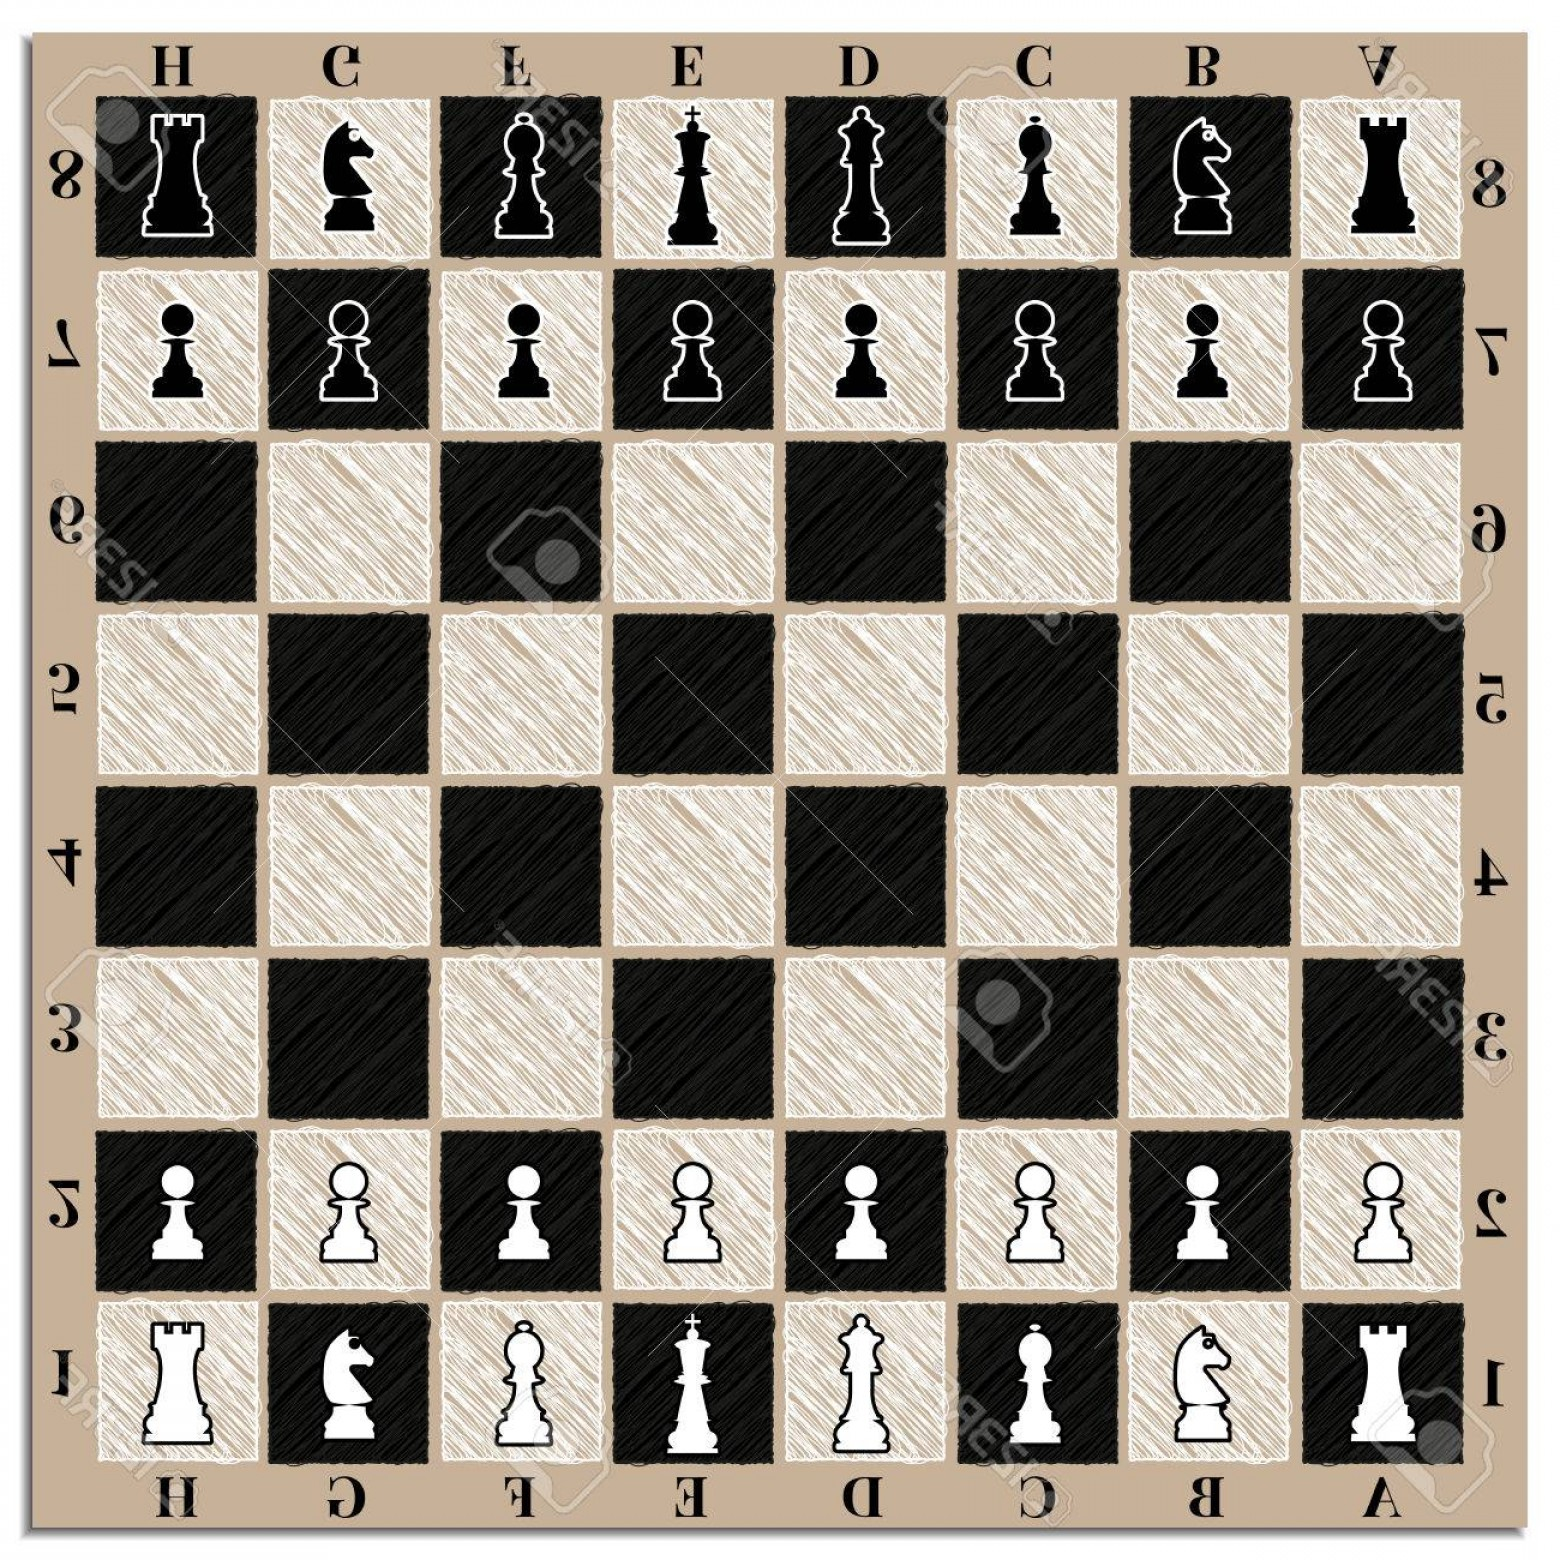 Vector Chess Board: Photostock Vector Chessboard With Chess Figures And Marking Vector Illustration